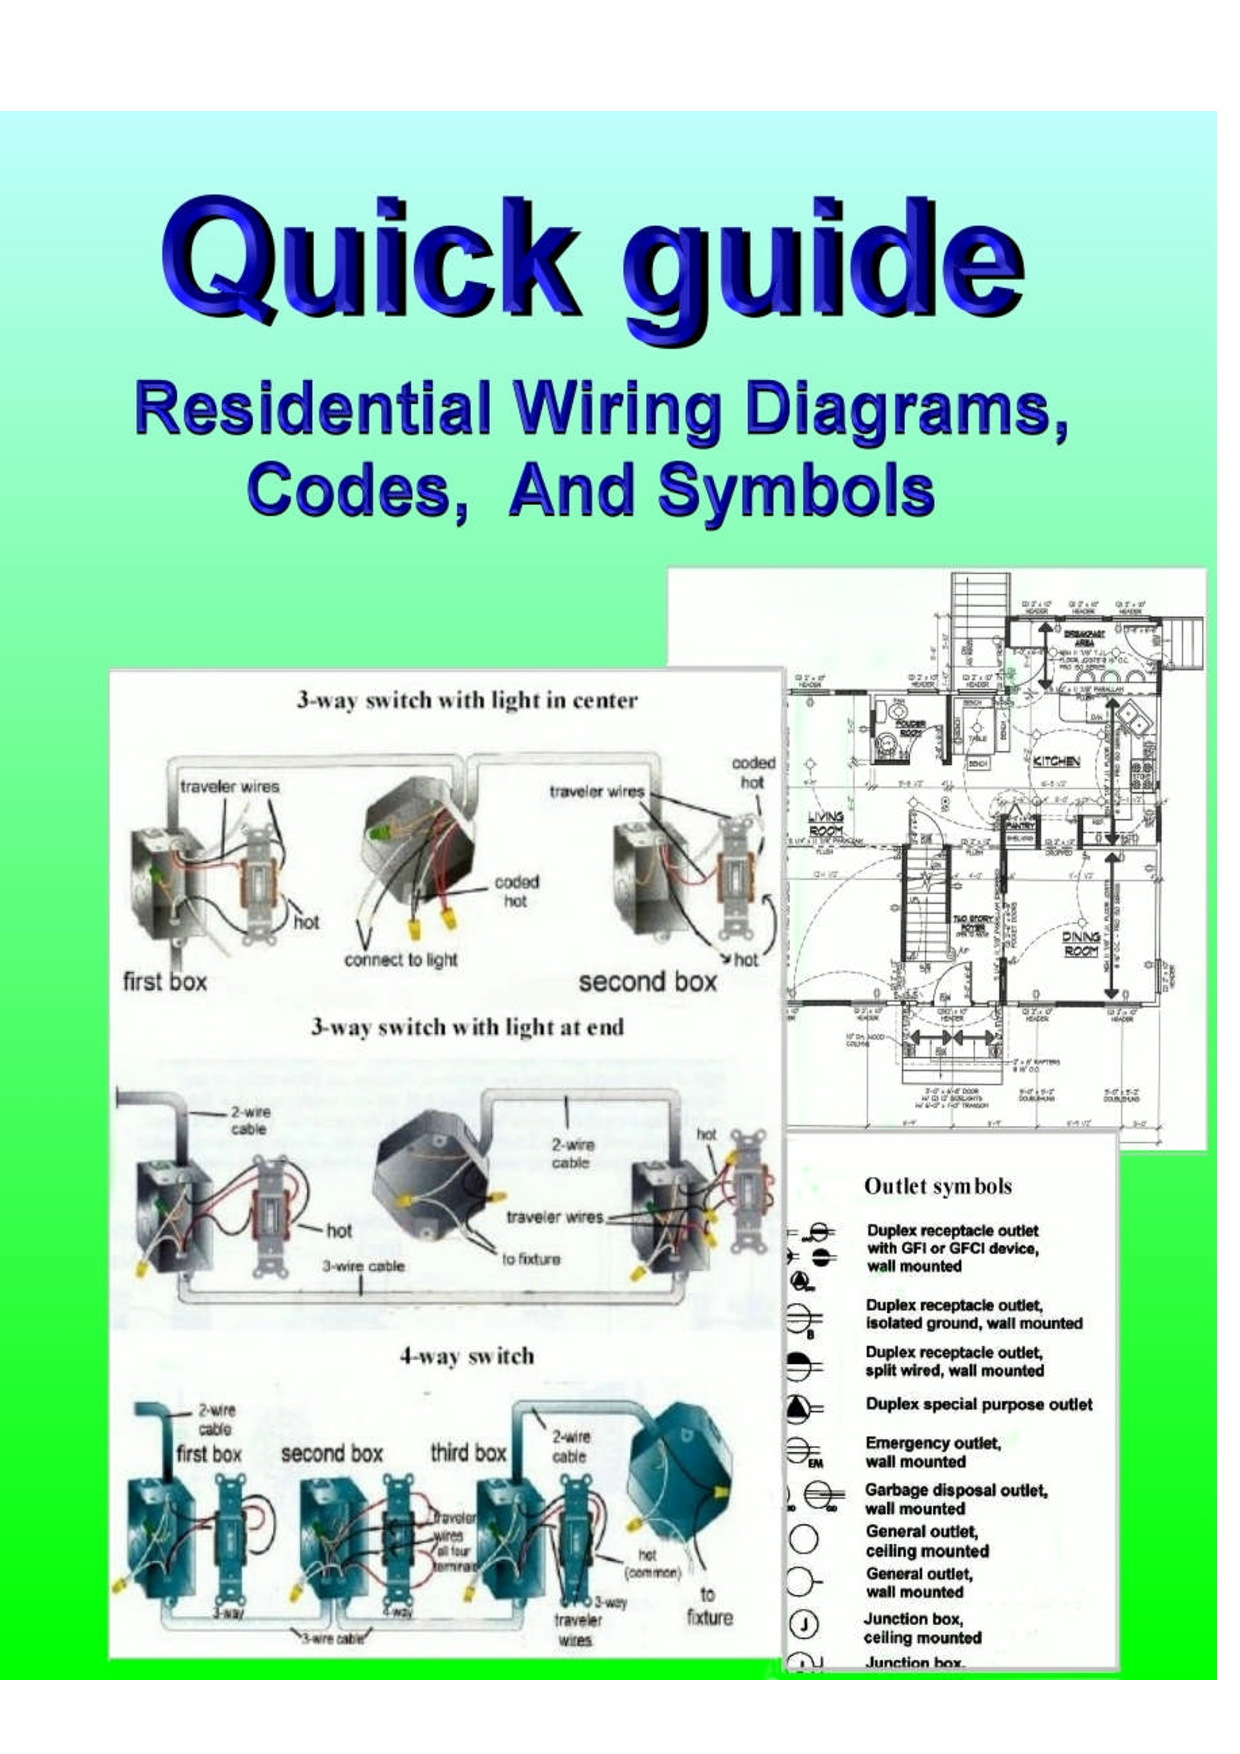 c3f403d8f667f3f3dbd14336f6c29d3e home electrical wiring diagrams visit the following link for Electrical Wiring Diagrams For Dummies at bayanpartner.co